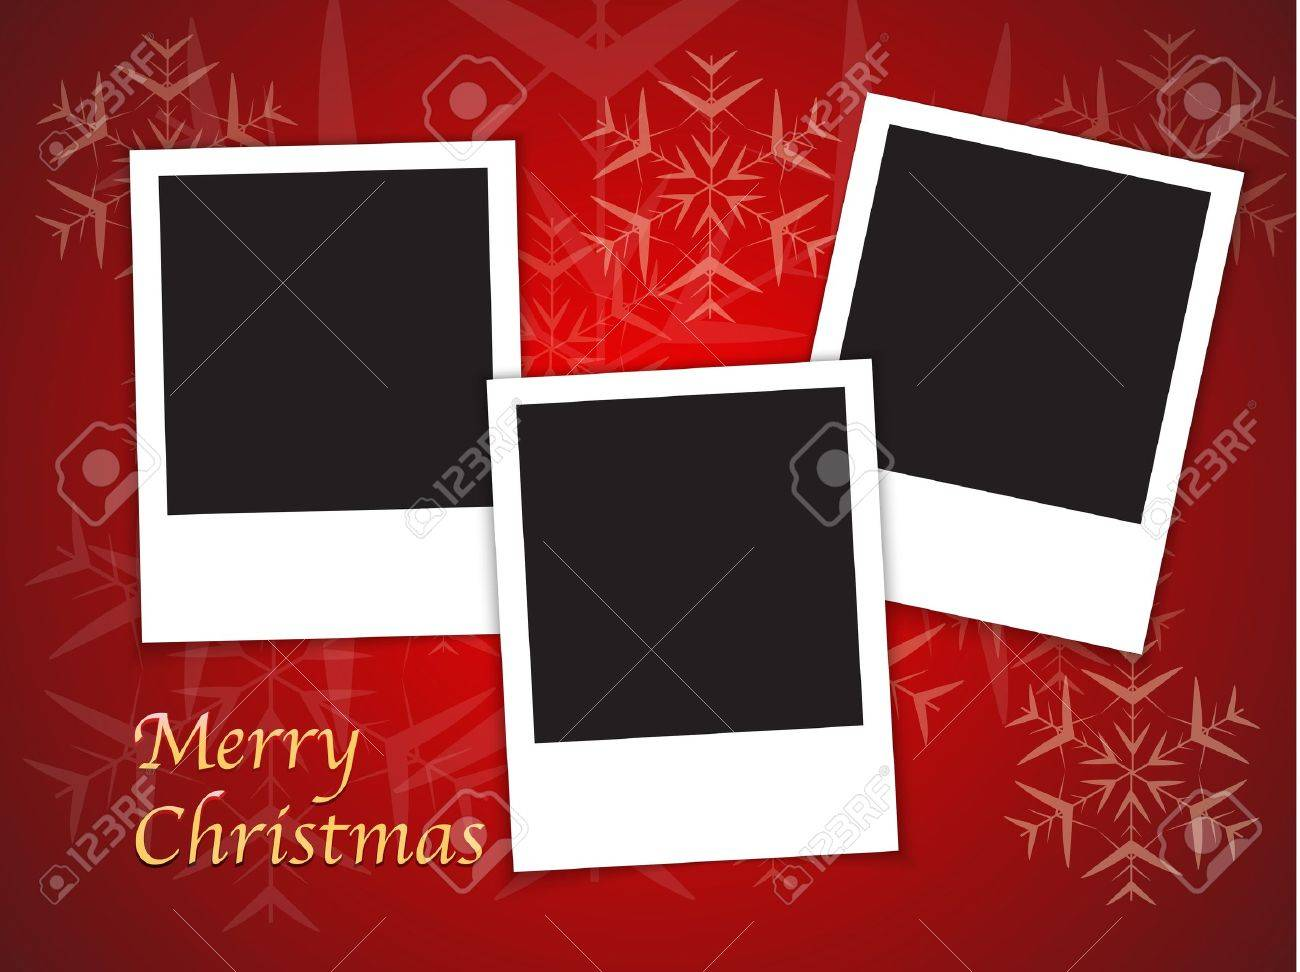 Merry Christmas Card Templates With Blank Photo Frames On Red - Free christmas card templates for photographers